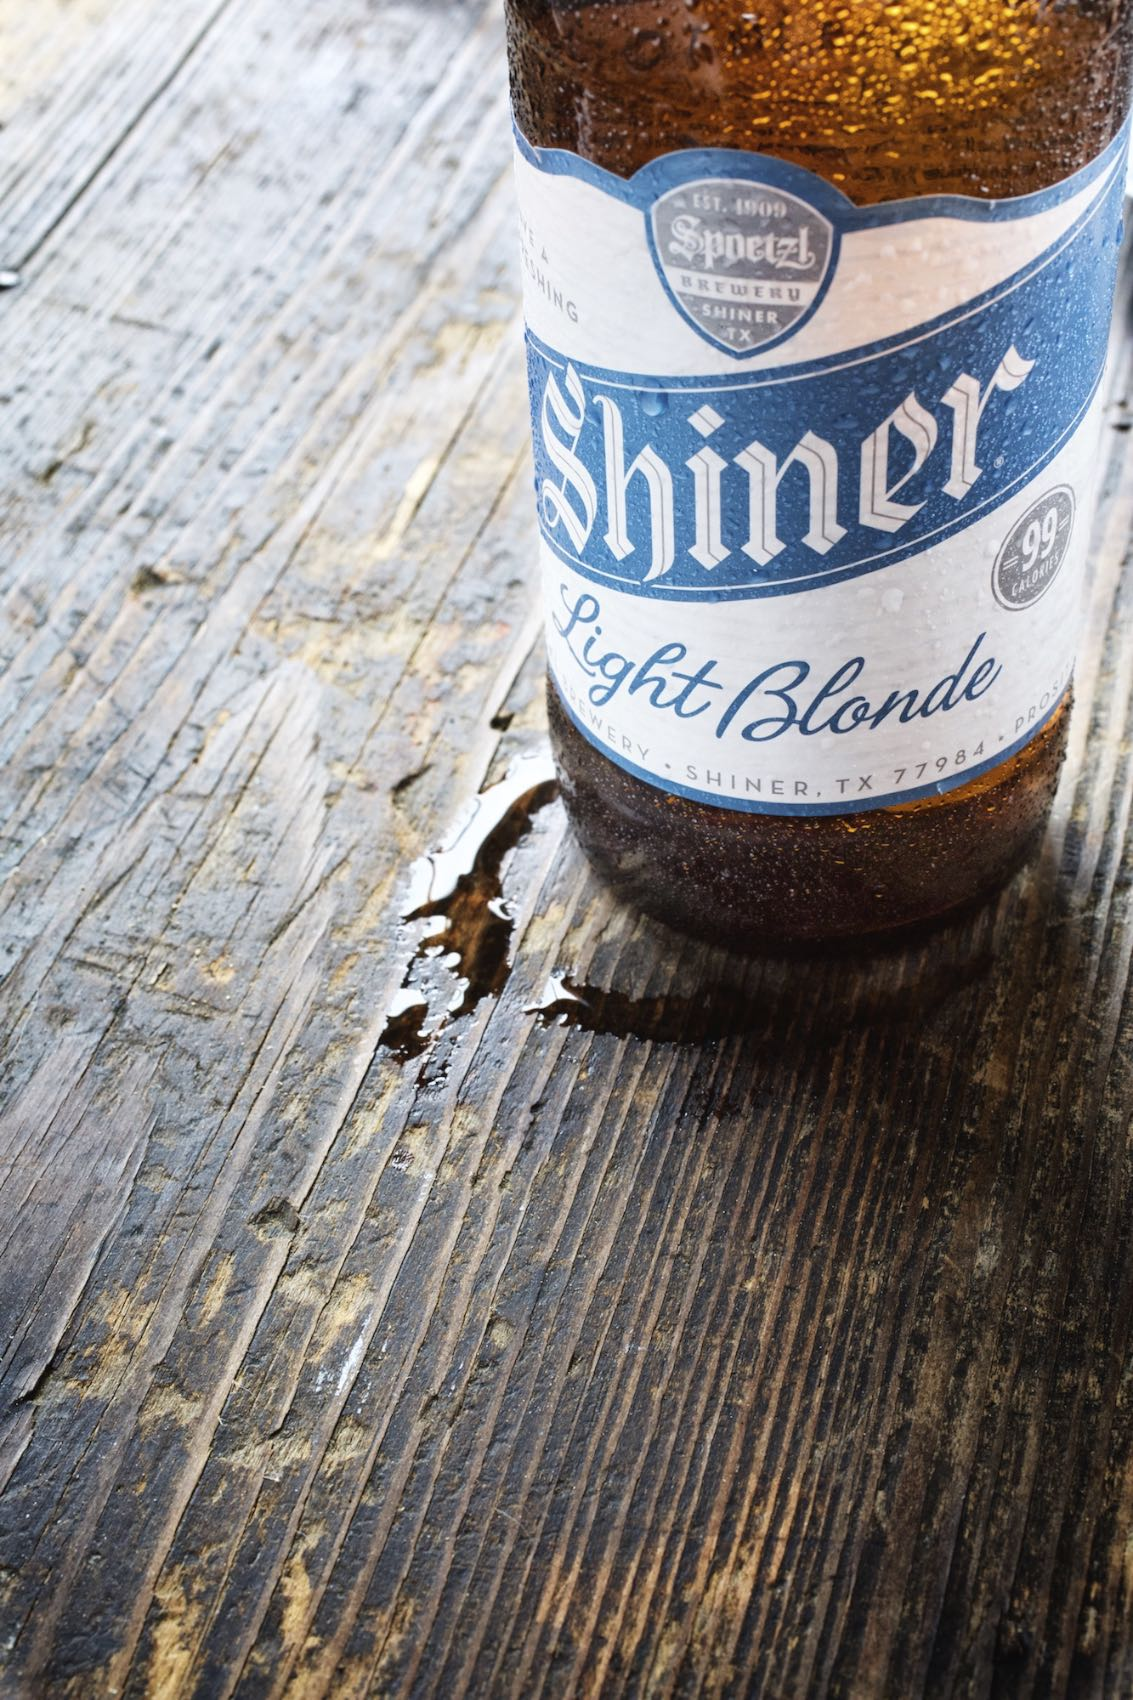 Jody Horton Photography - Shiner Light Blonde ad with cold bottle and condensation on wood table for McGarrah Jessee.